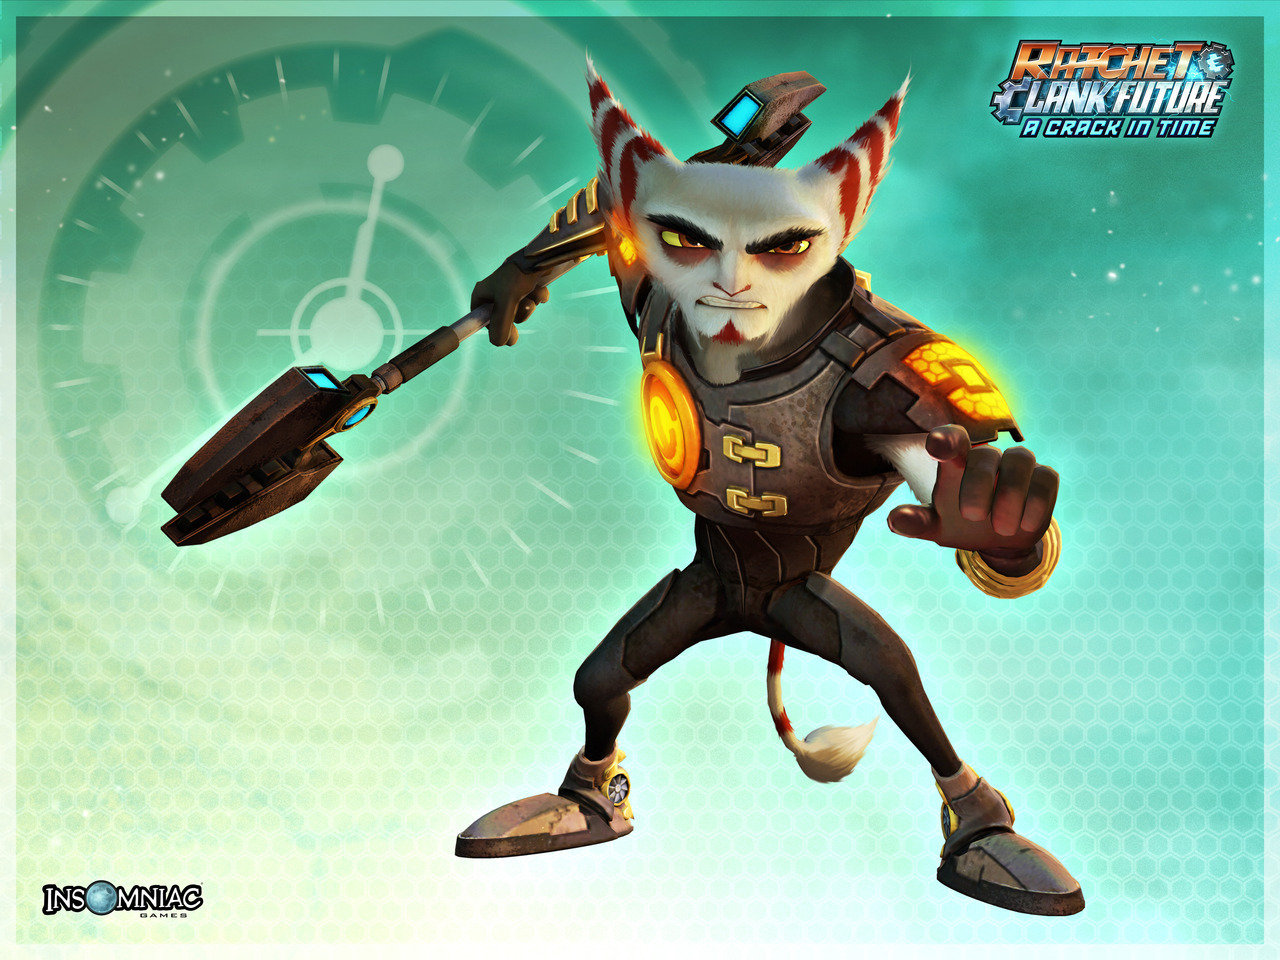 http://image.jeuxvideo.com/images/p3/r/a/ratchet-clank-a-crack-in-time-playstation-3-ps3-026.jpg